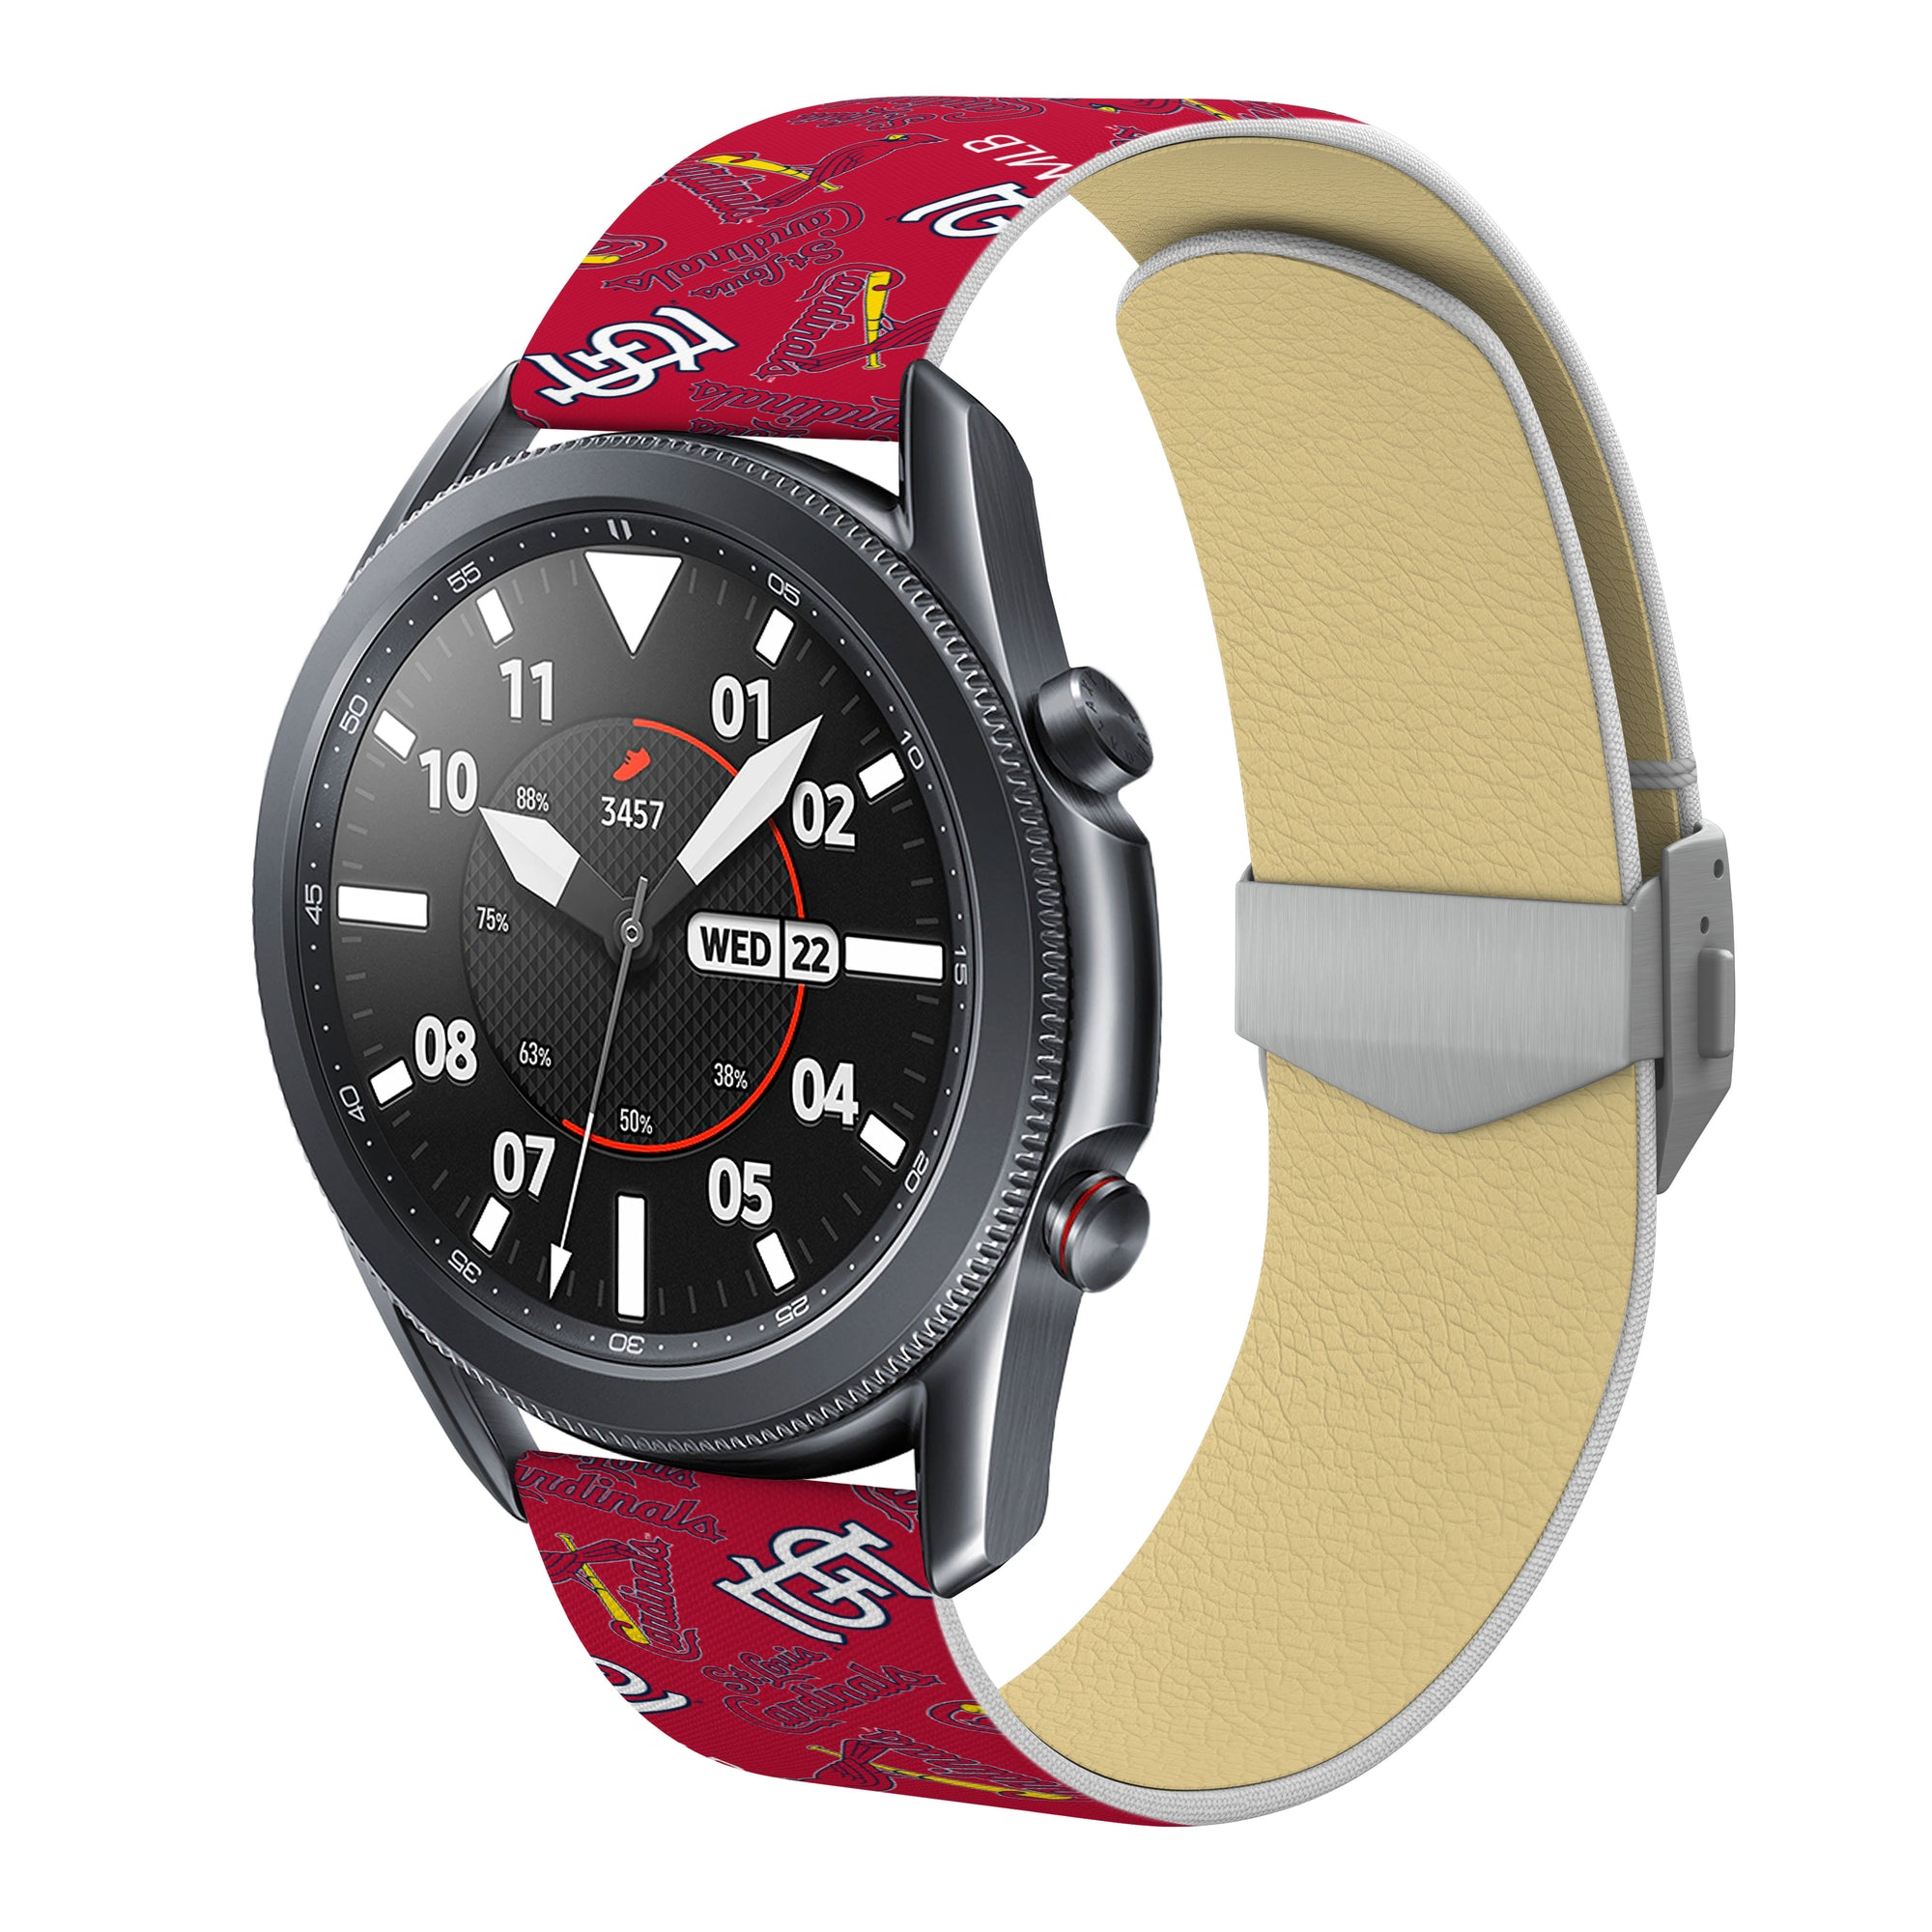 St. Louis Cardinals Full Print Quick Change Watch Band With Engraved Buckle - AffinityBands